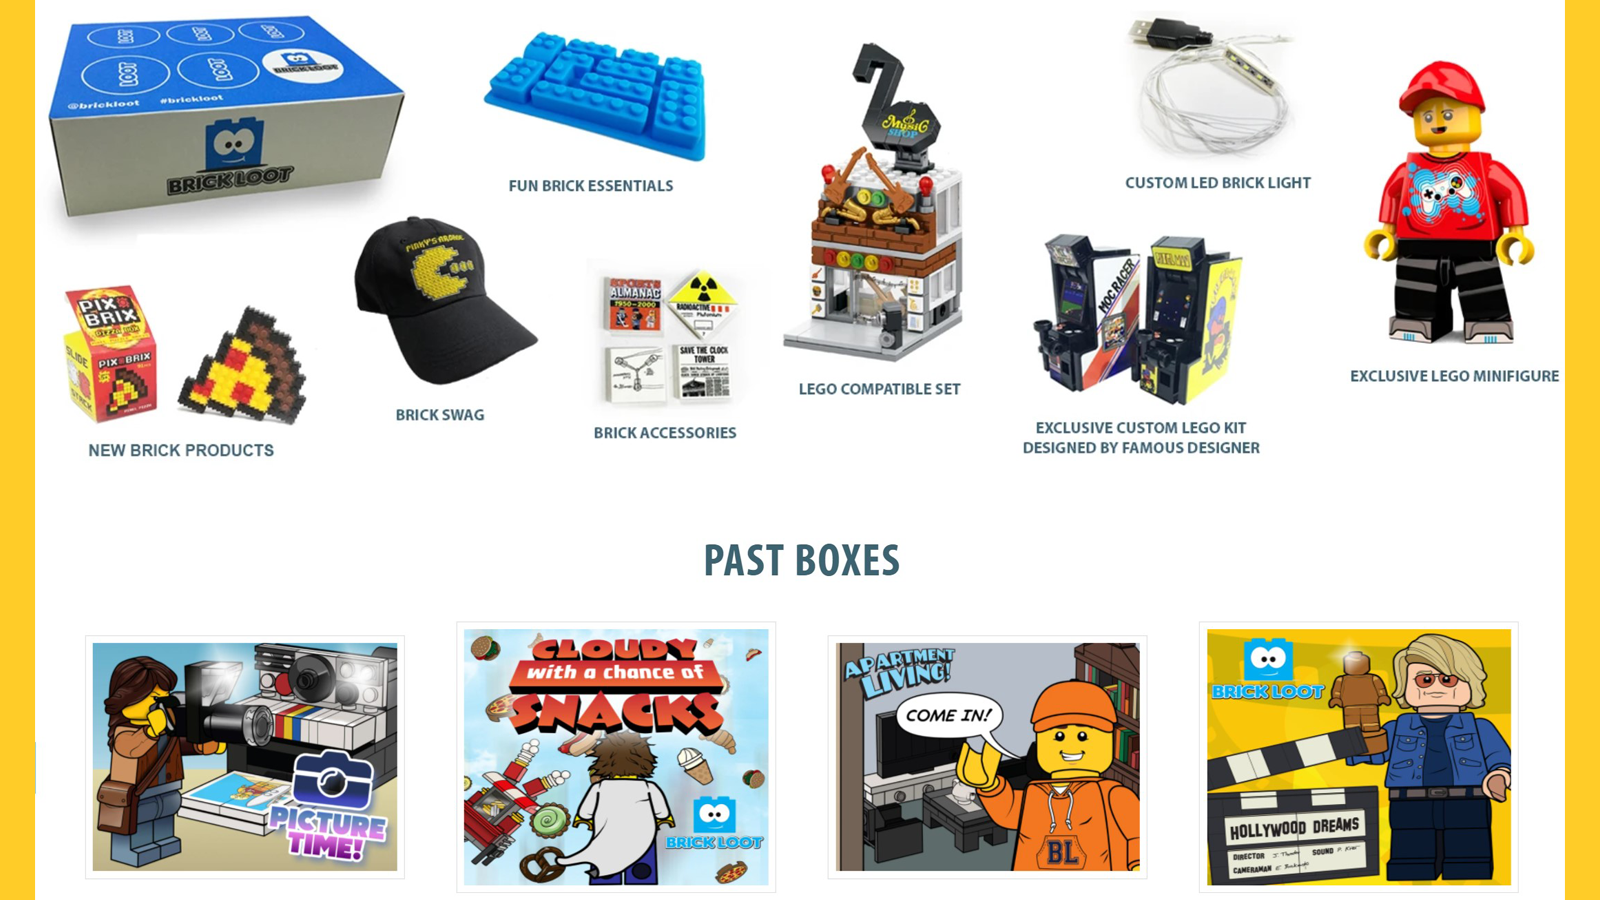 Item examples commonly found in the Brick Loot box